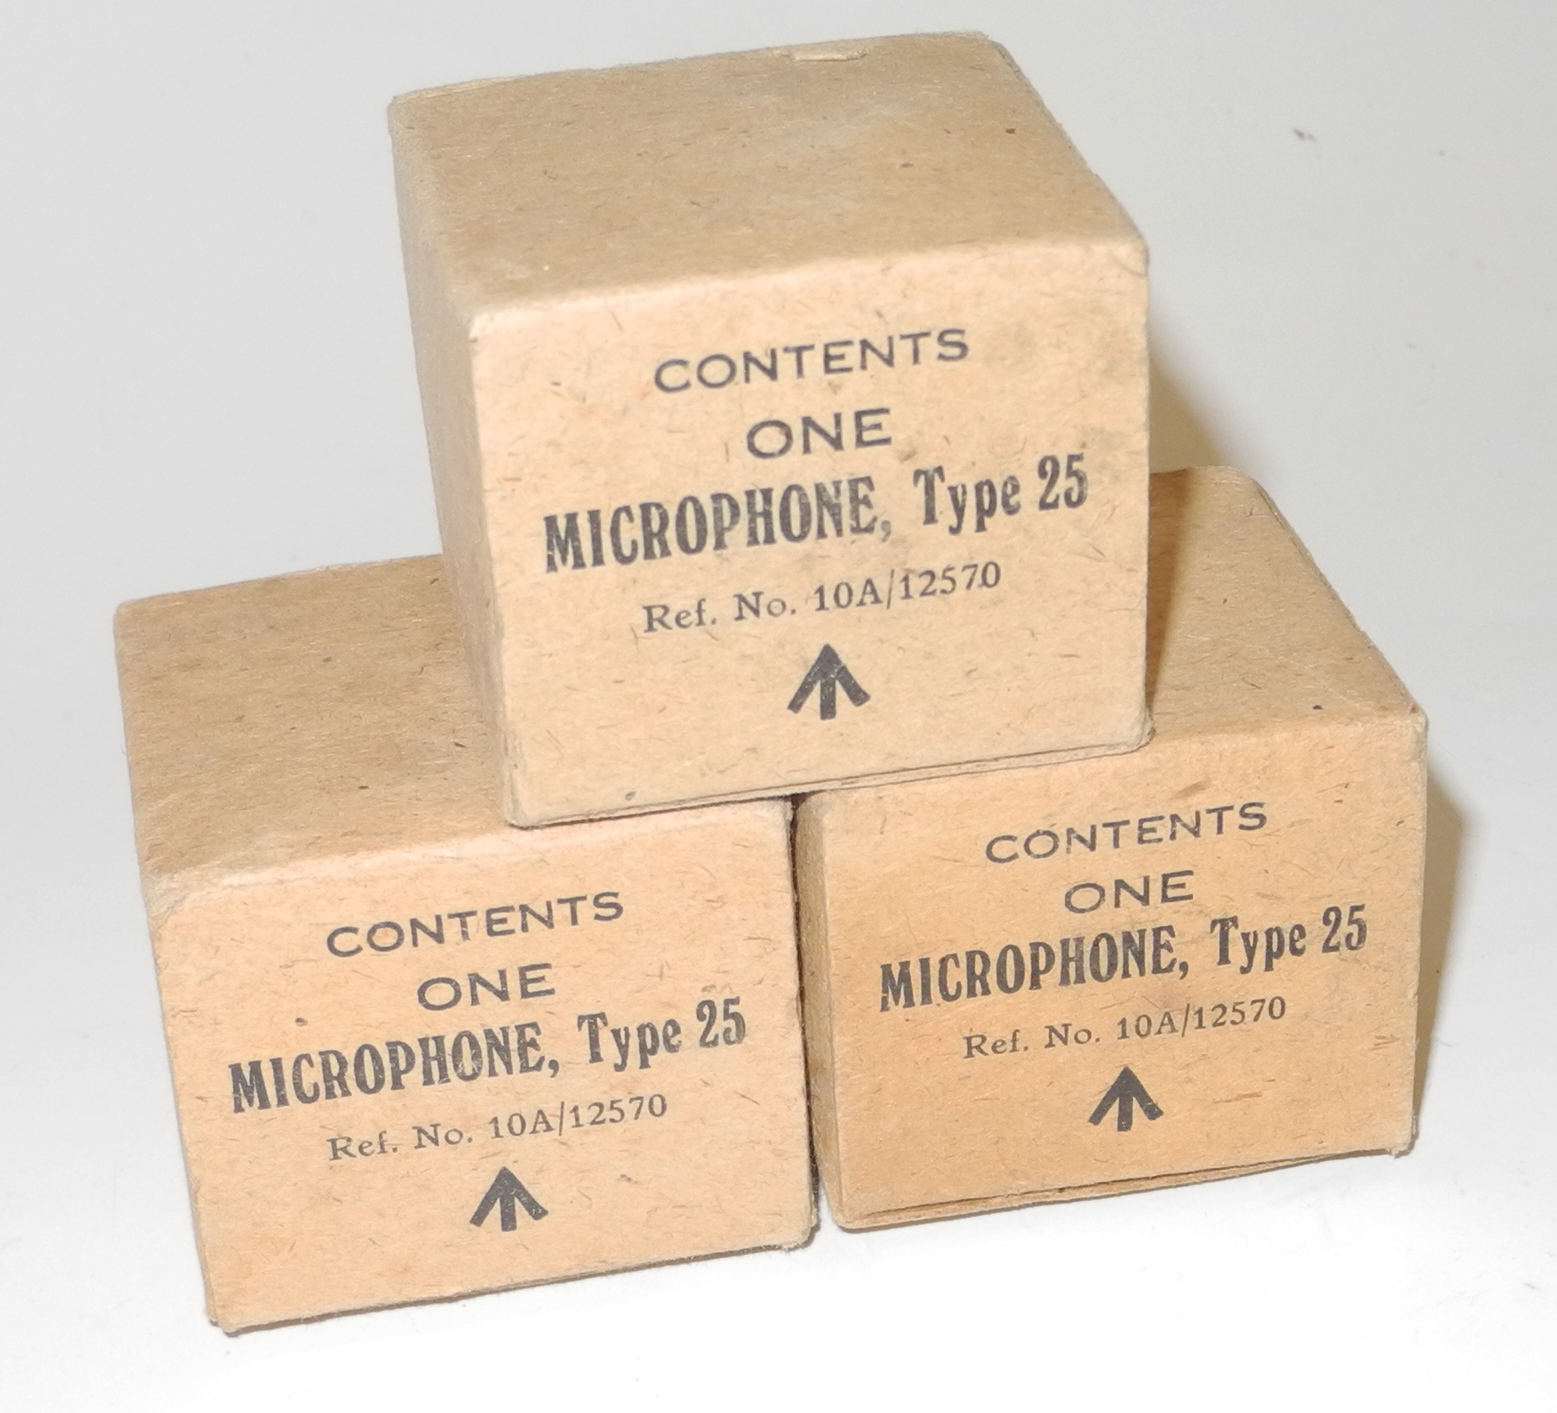 RAF box for Type 25 microphone